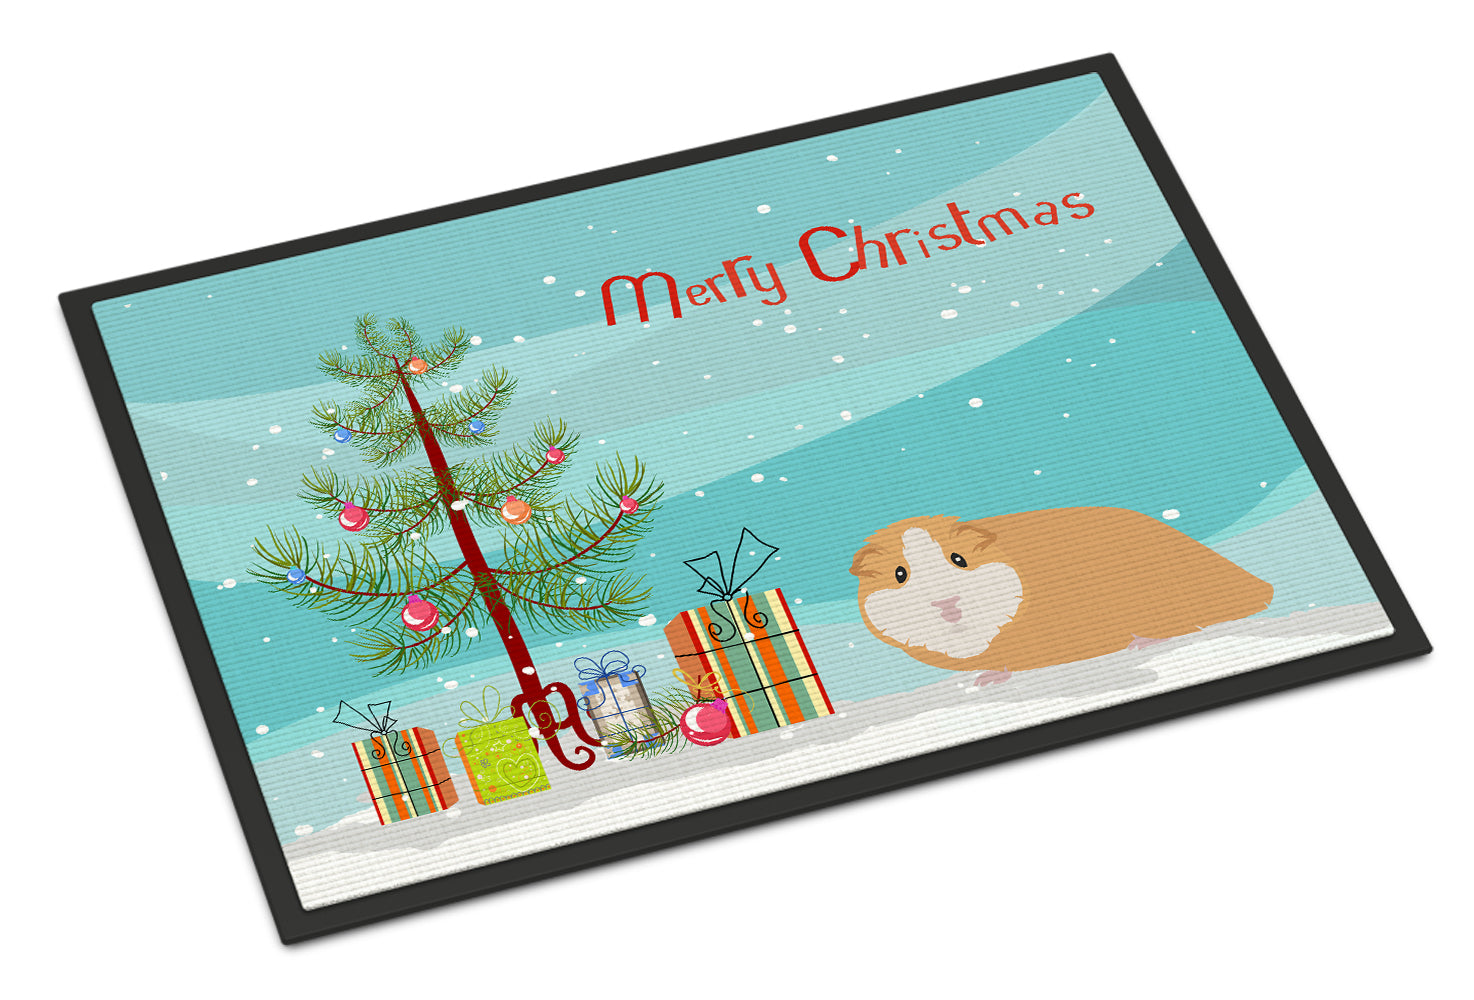 American Guinea Pig Merry Christmas Indoor or Outdoor Mat 18x27 CK4439MAT by Caroline's Treasures